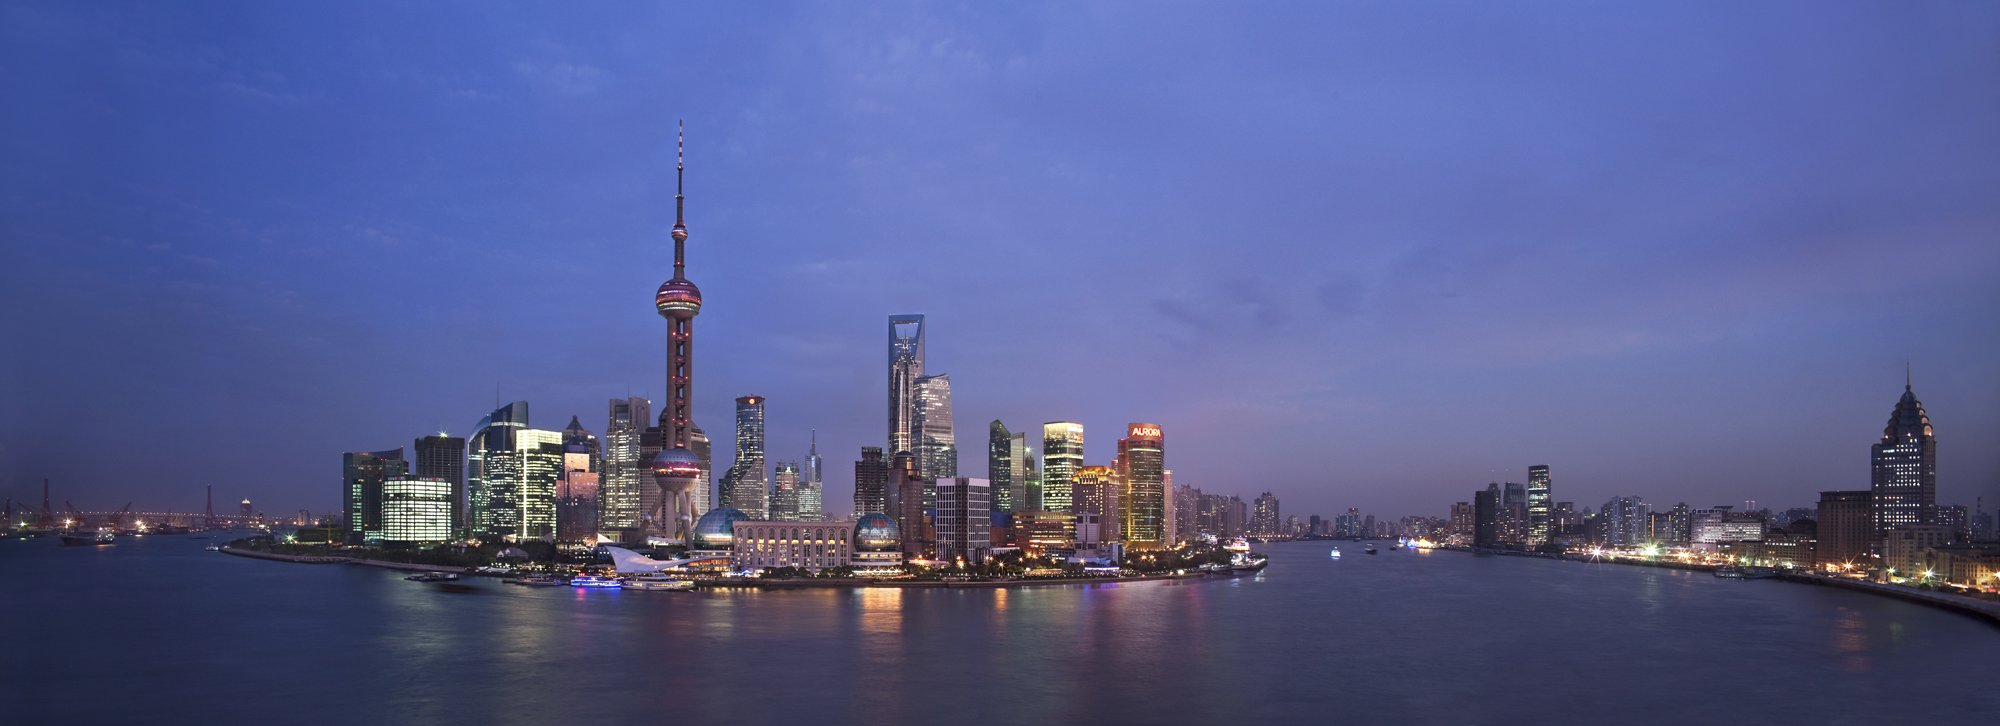 shanghai-skyline-river-view